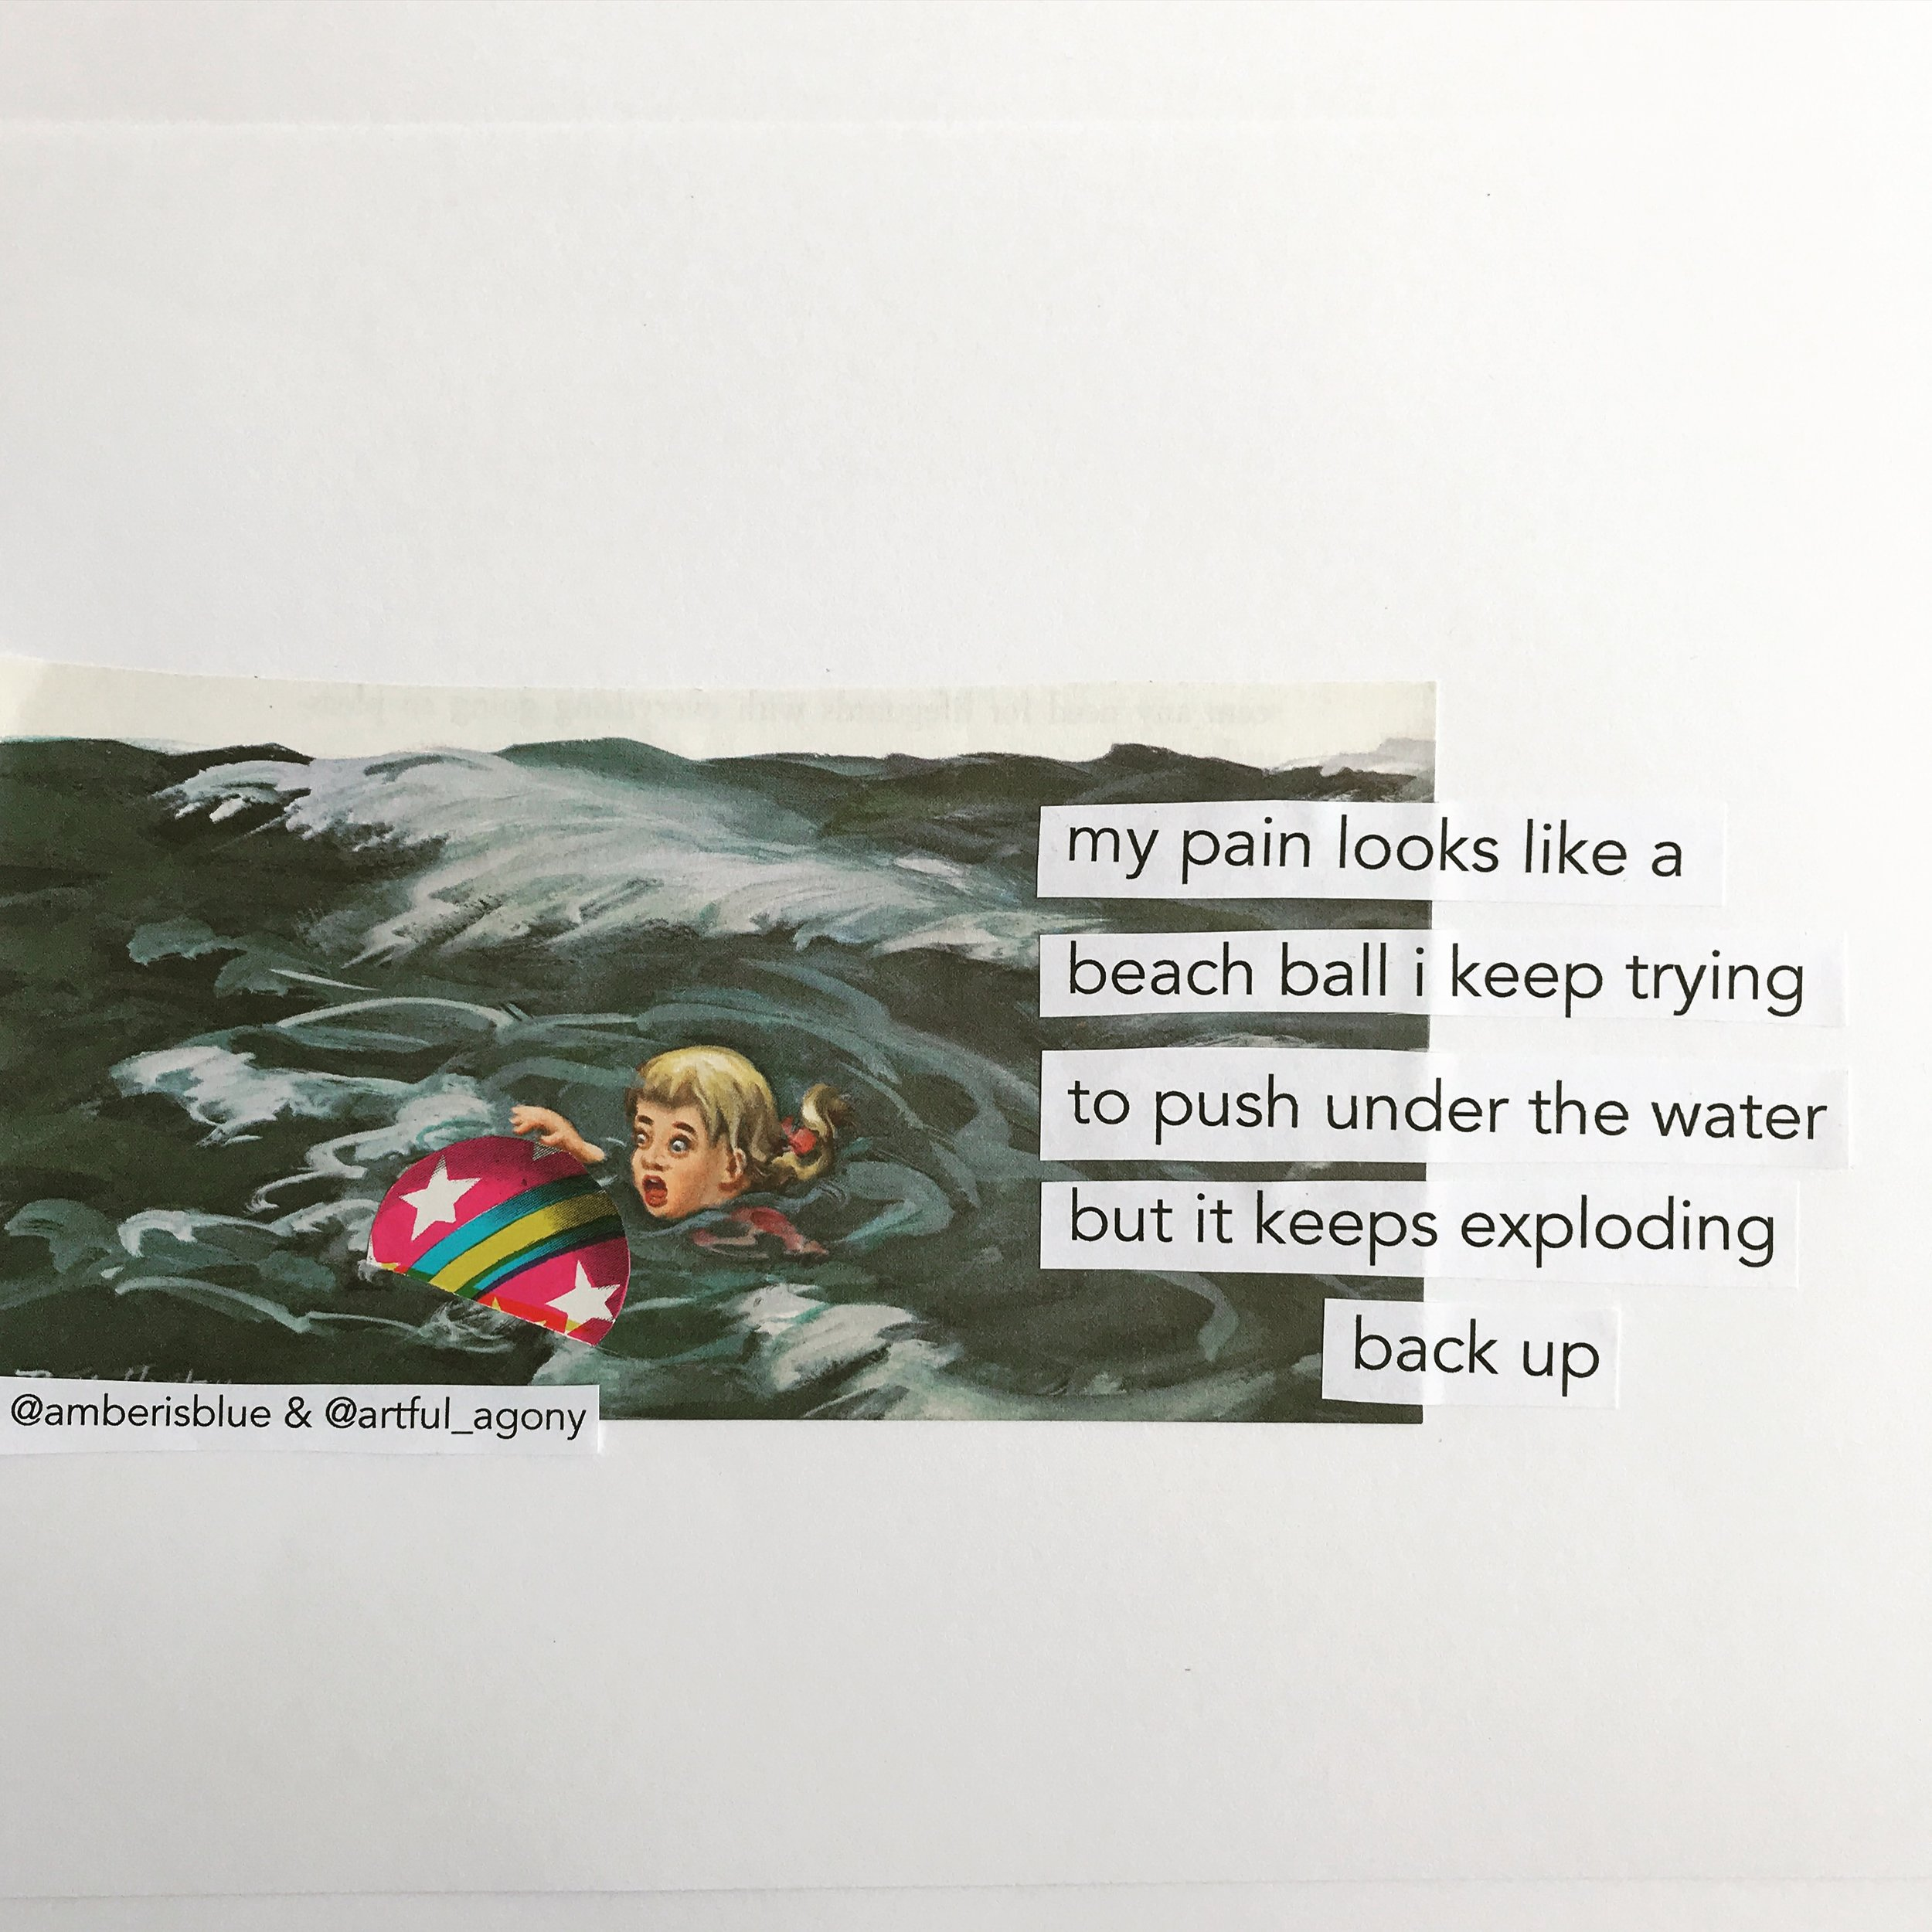 BEACH BALL  ''My pain looks like a beach ball I keep trying to push under the water but it keens exploding back up.'  submitted by @amberisblue